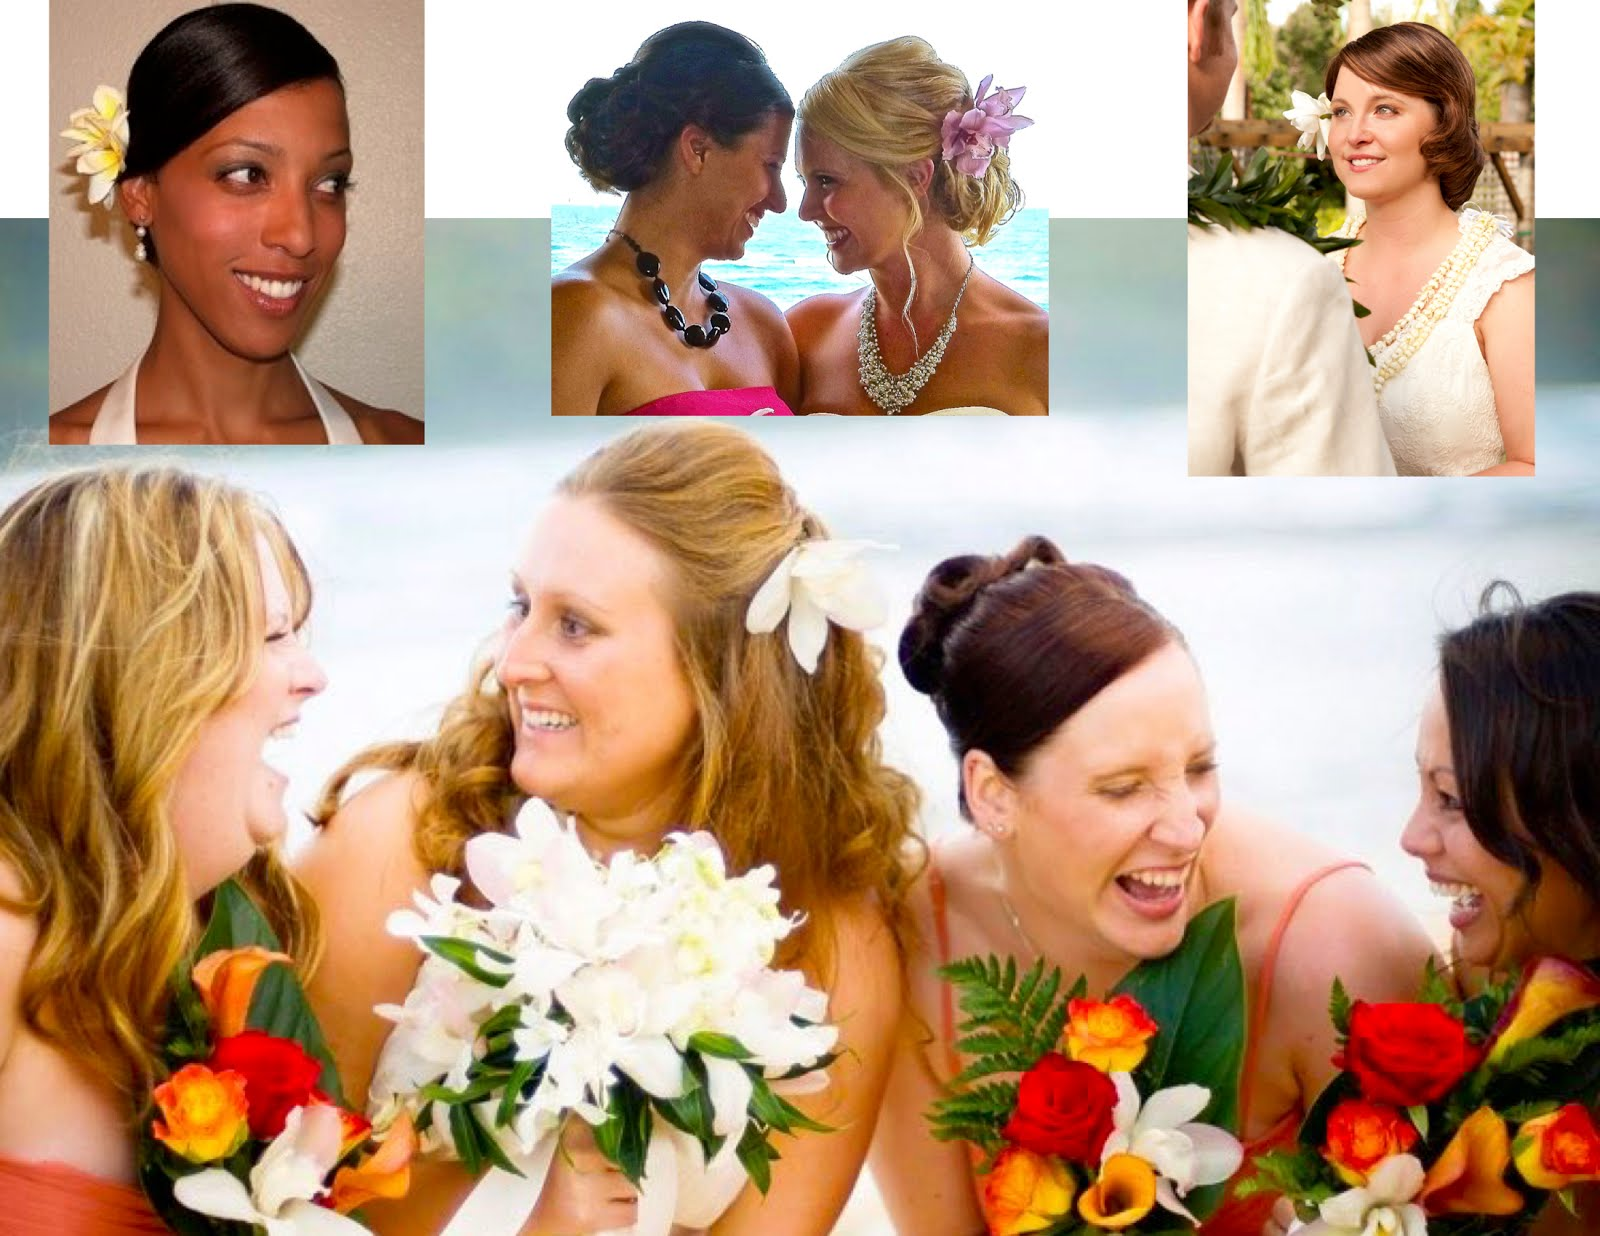 Kauai Destination Brides  Hair and Makeup in Salon or Onsite